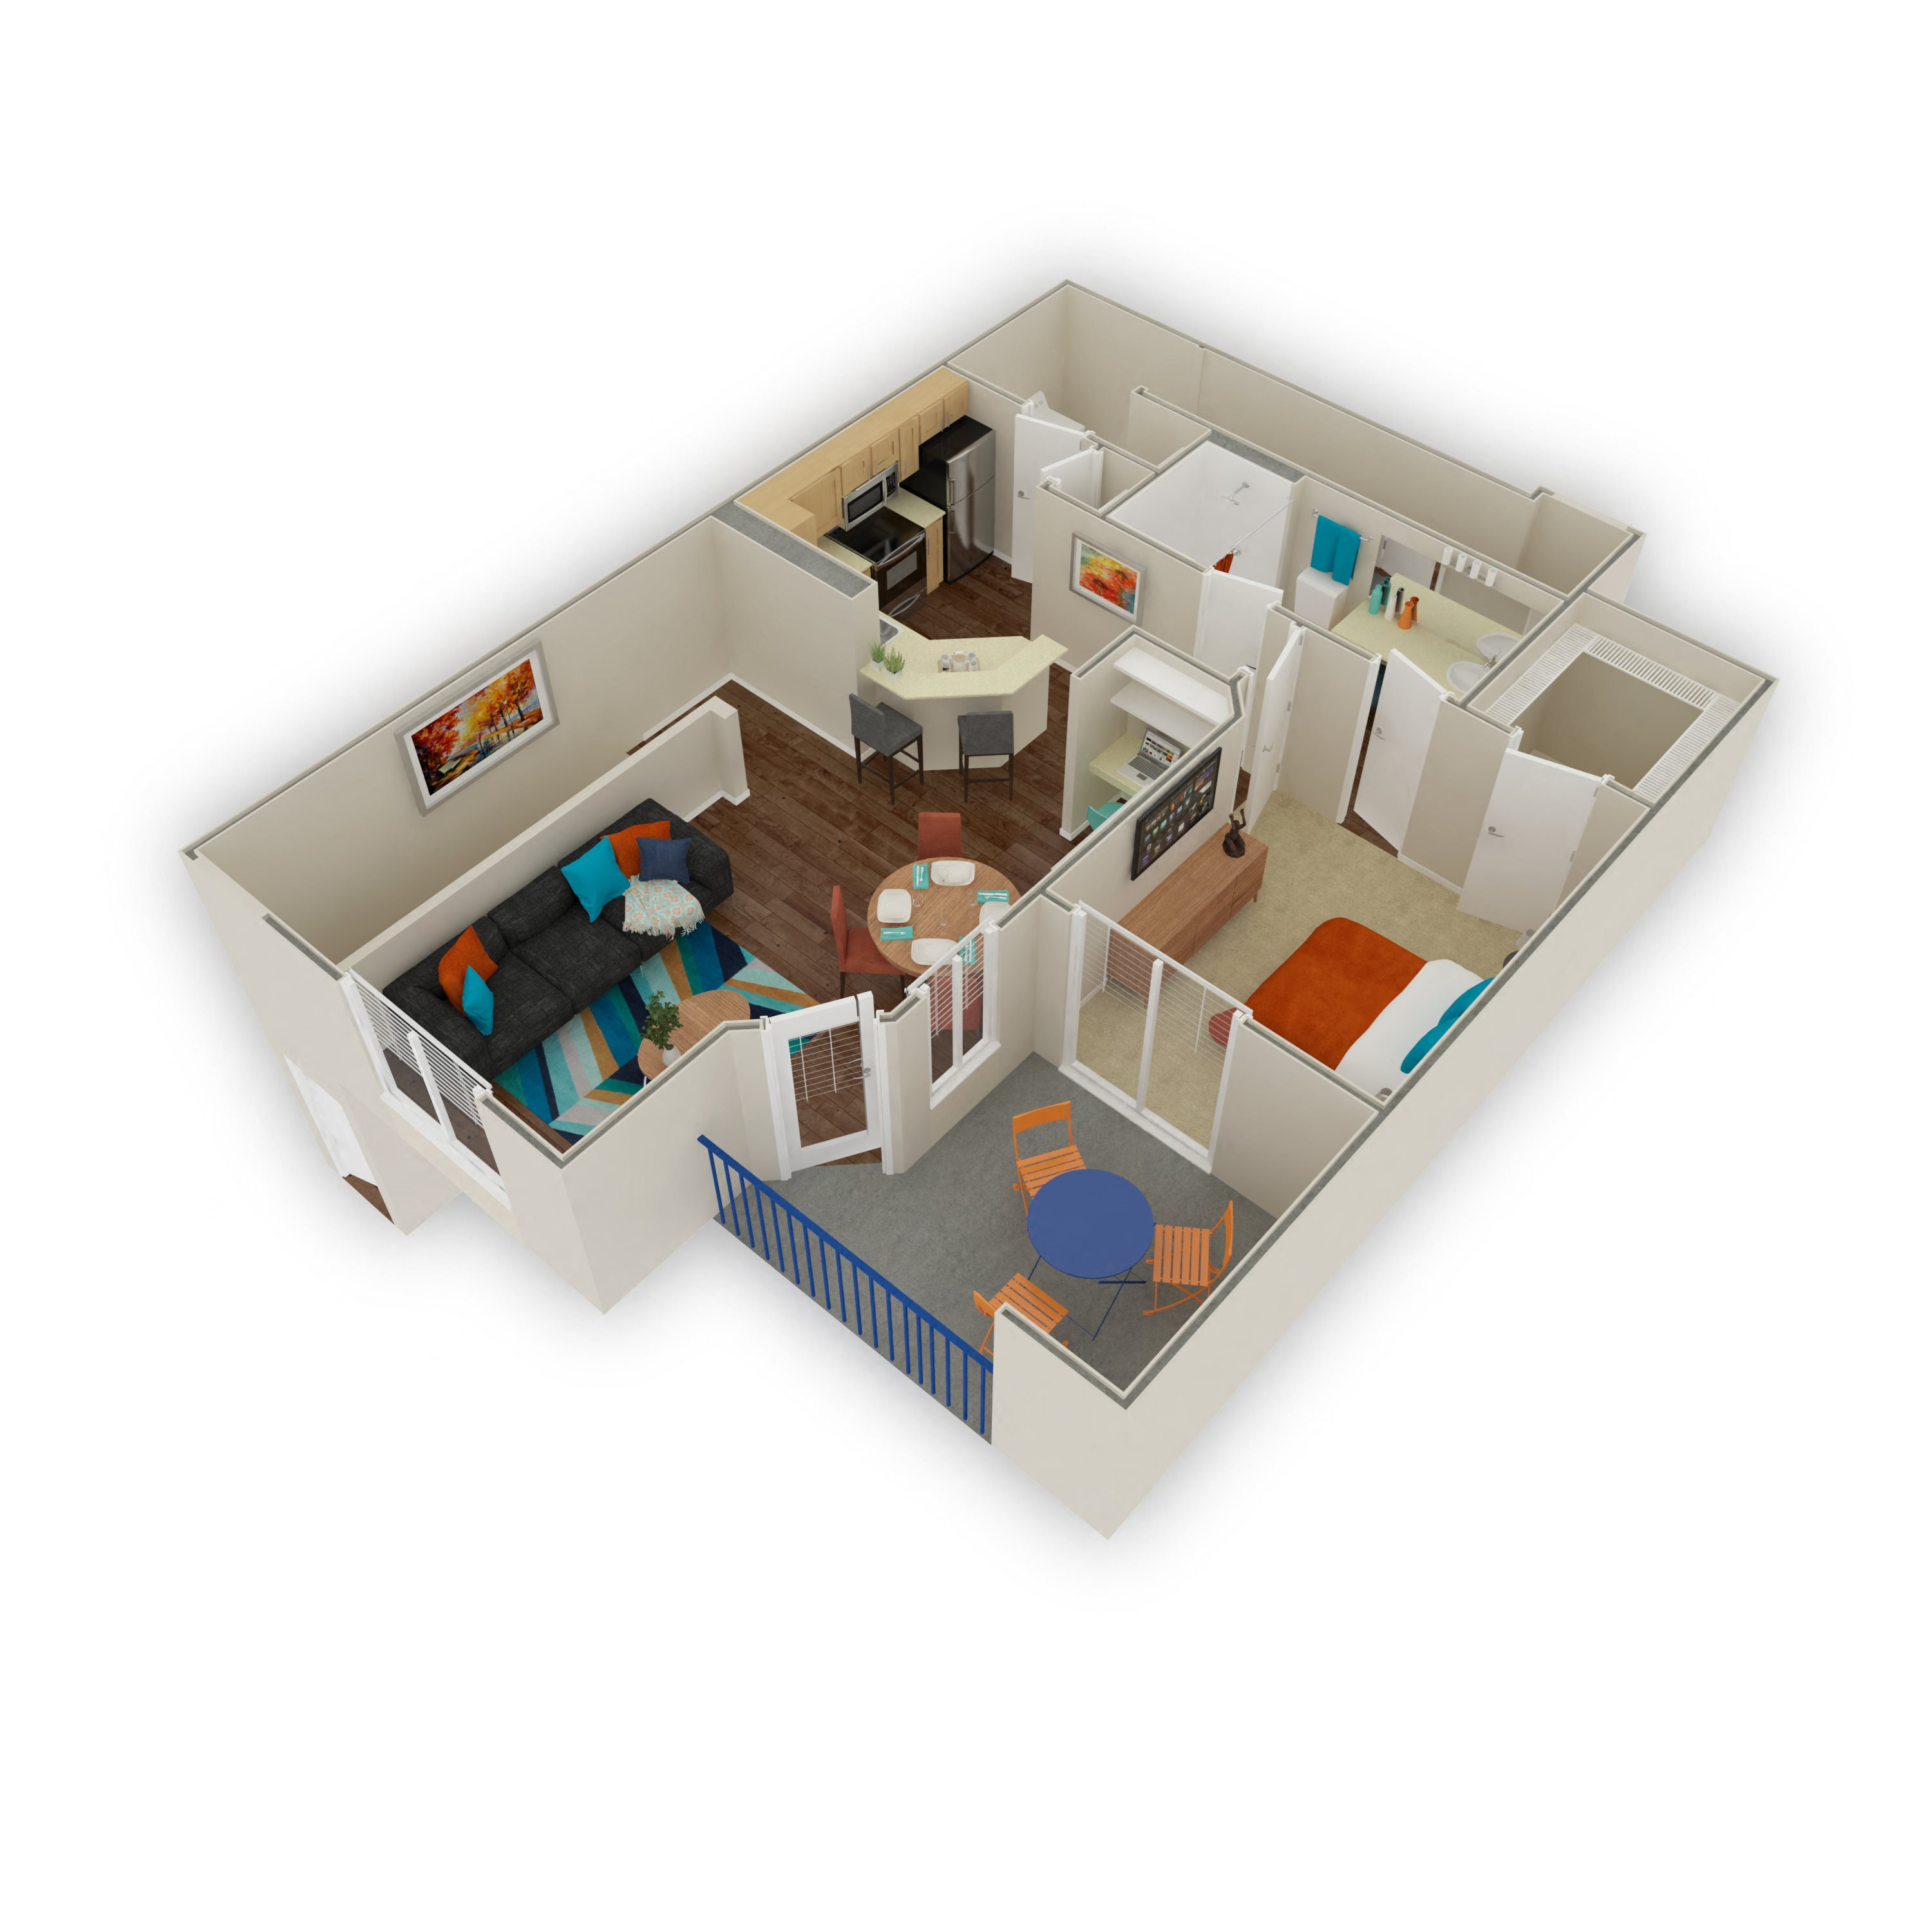 The Carefree Floor Plan 2